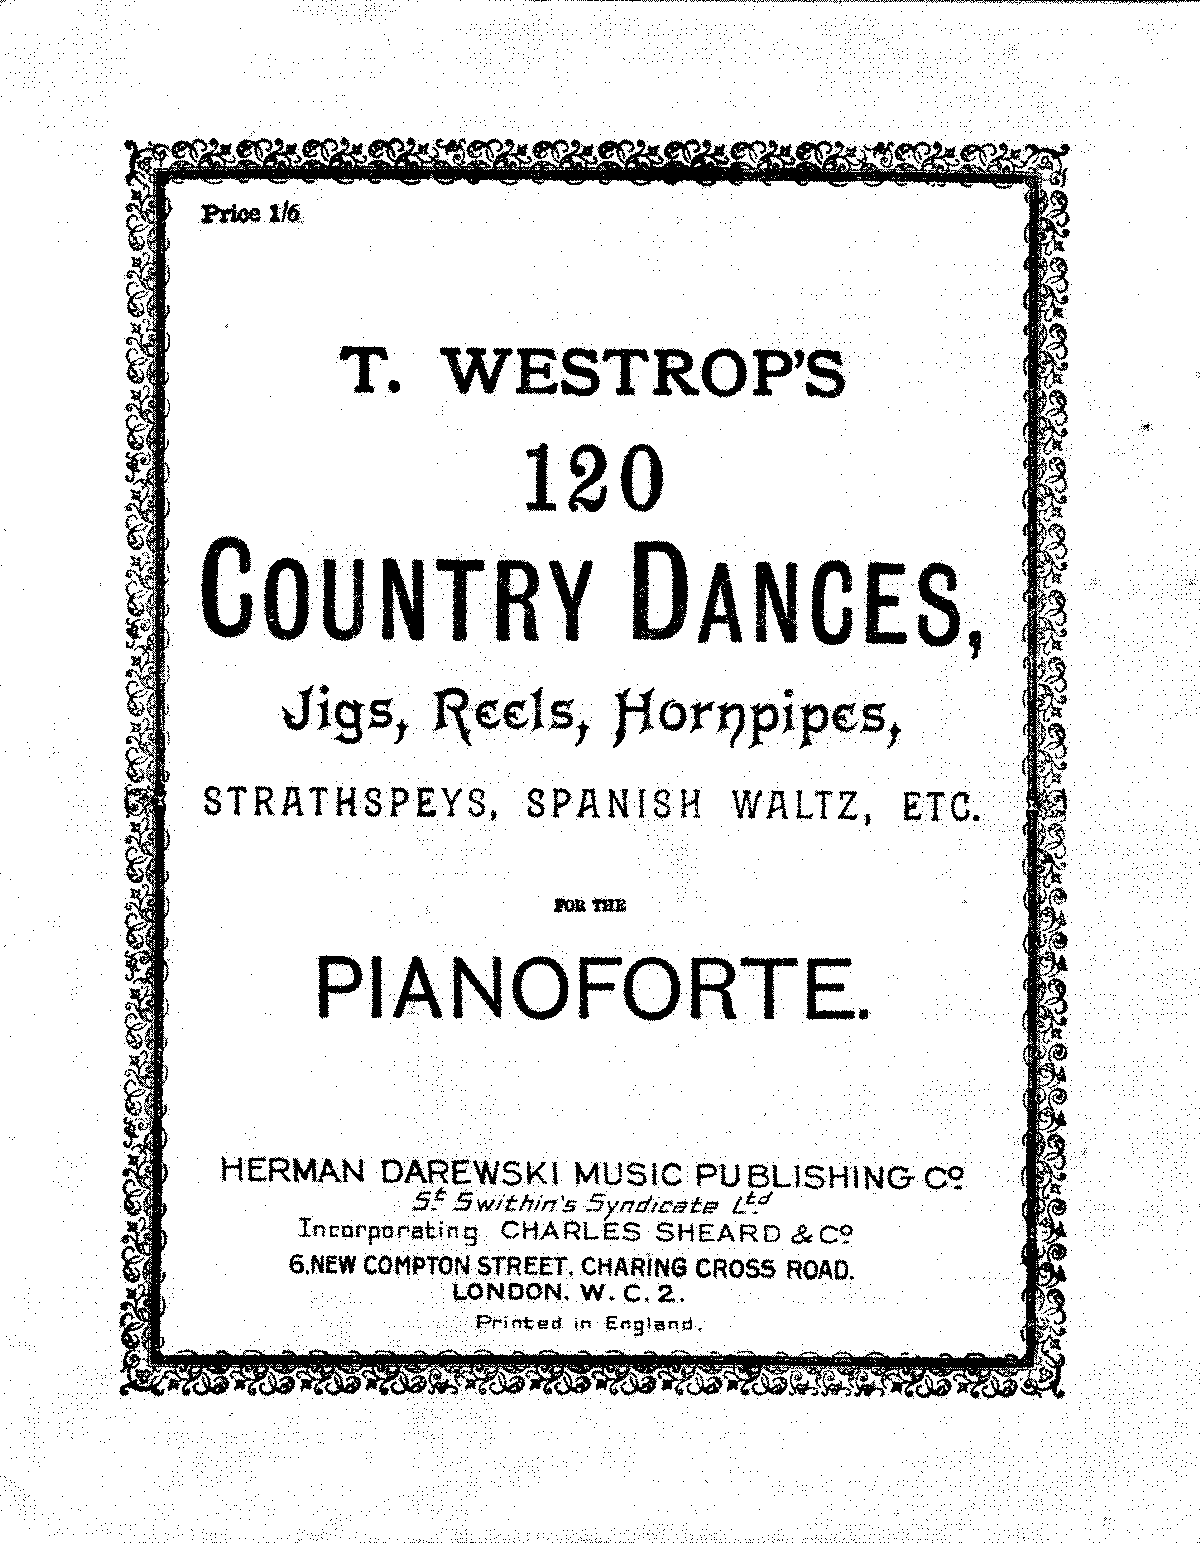 PMLP124225-t westrops 120 country dances pf.pdf